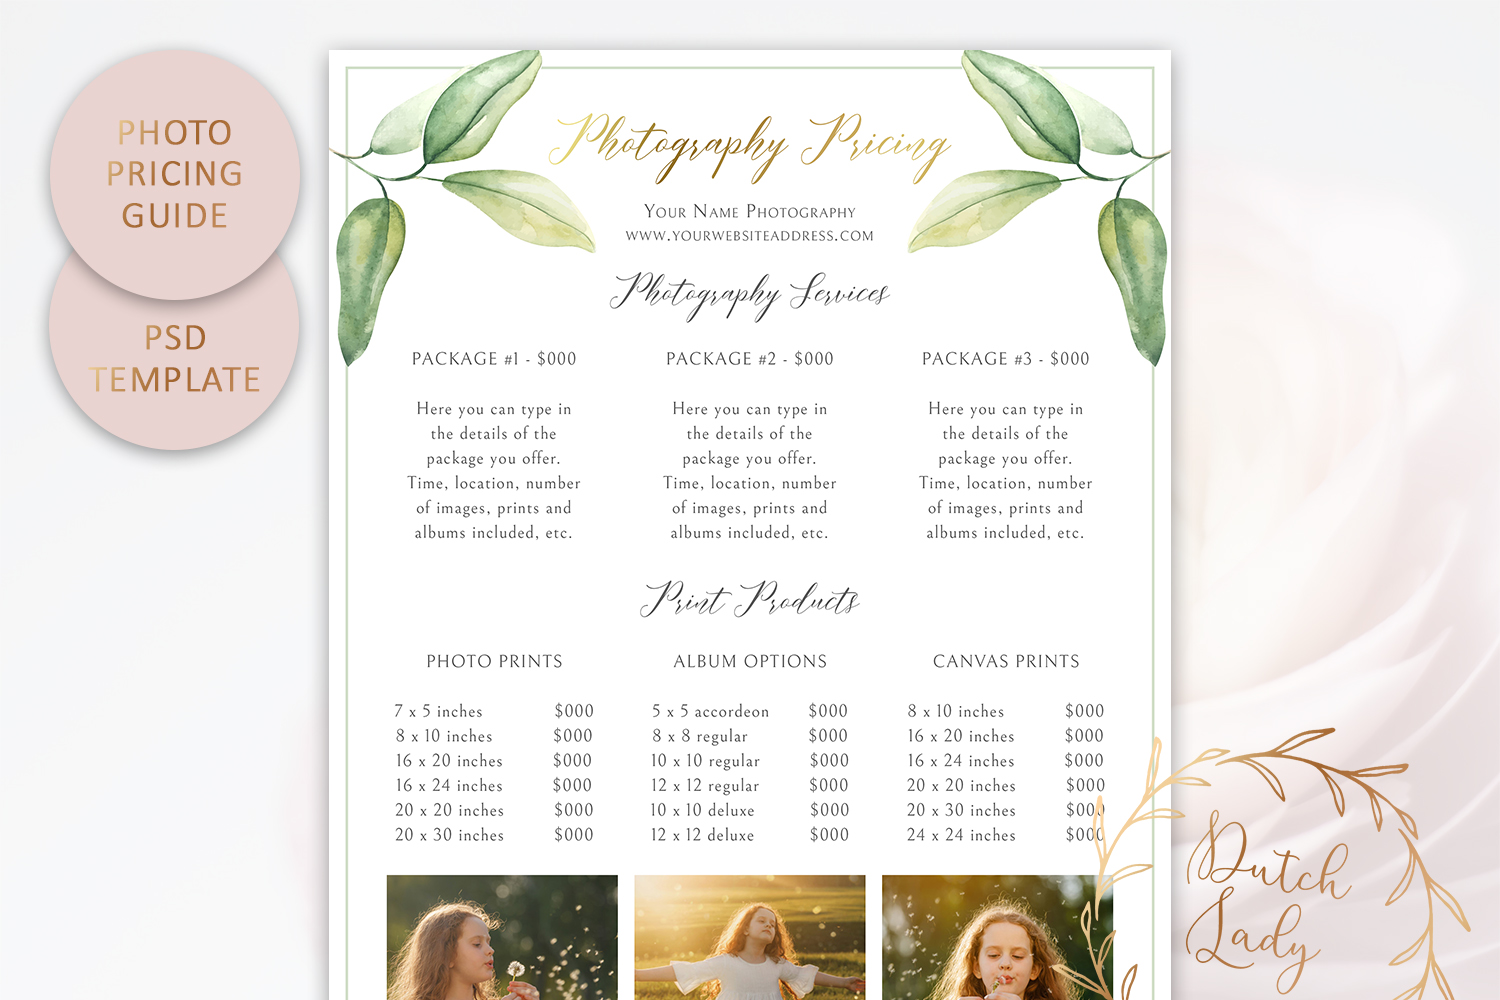 PSD Photography Pricing Guide Template Design #10 example image 2